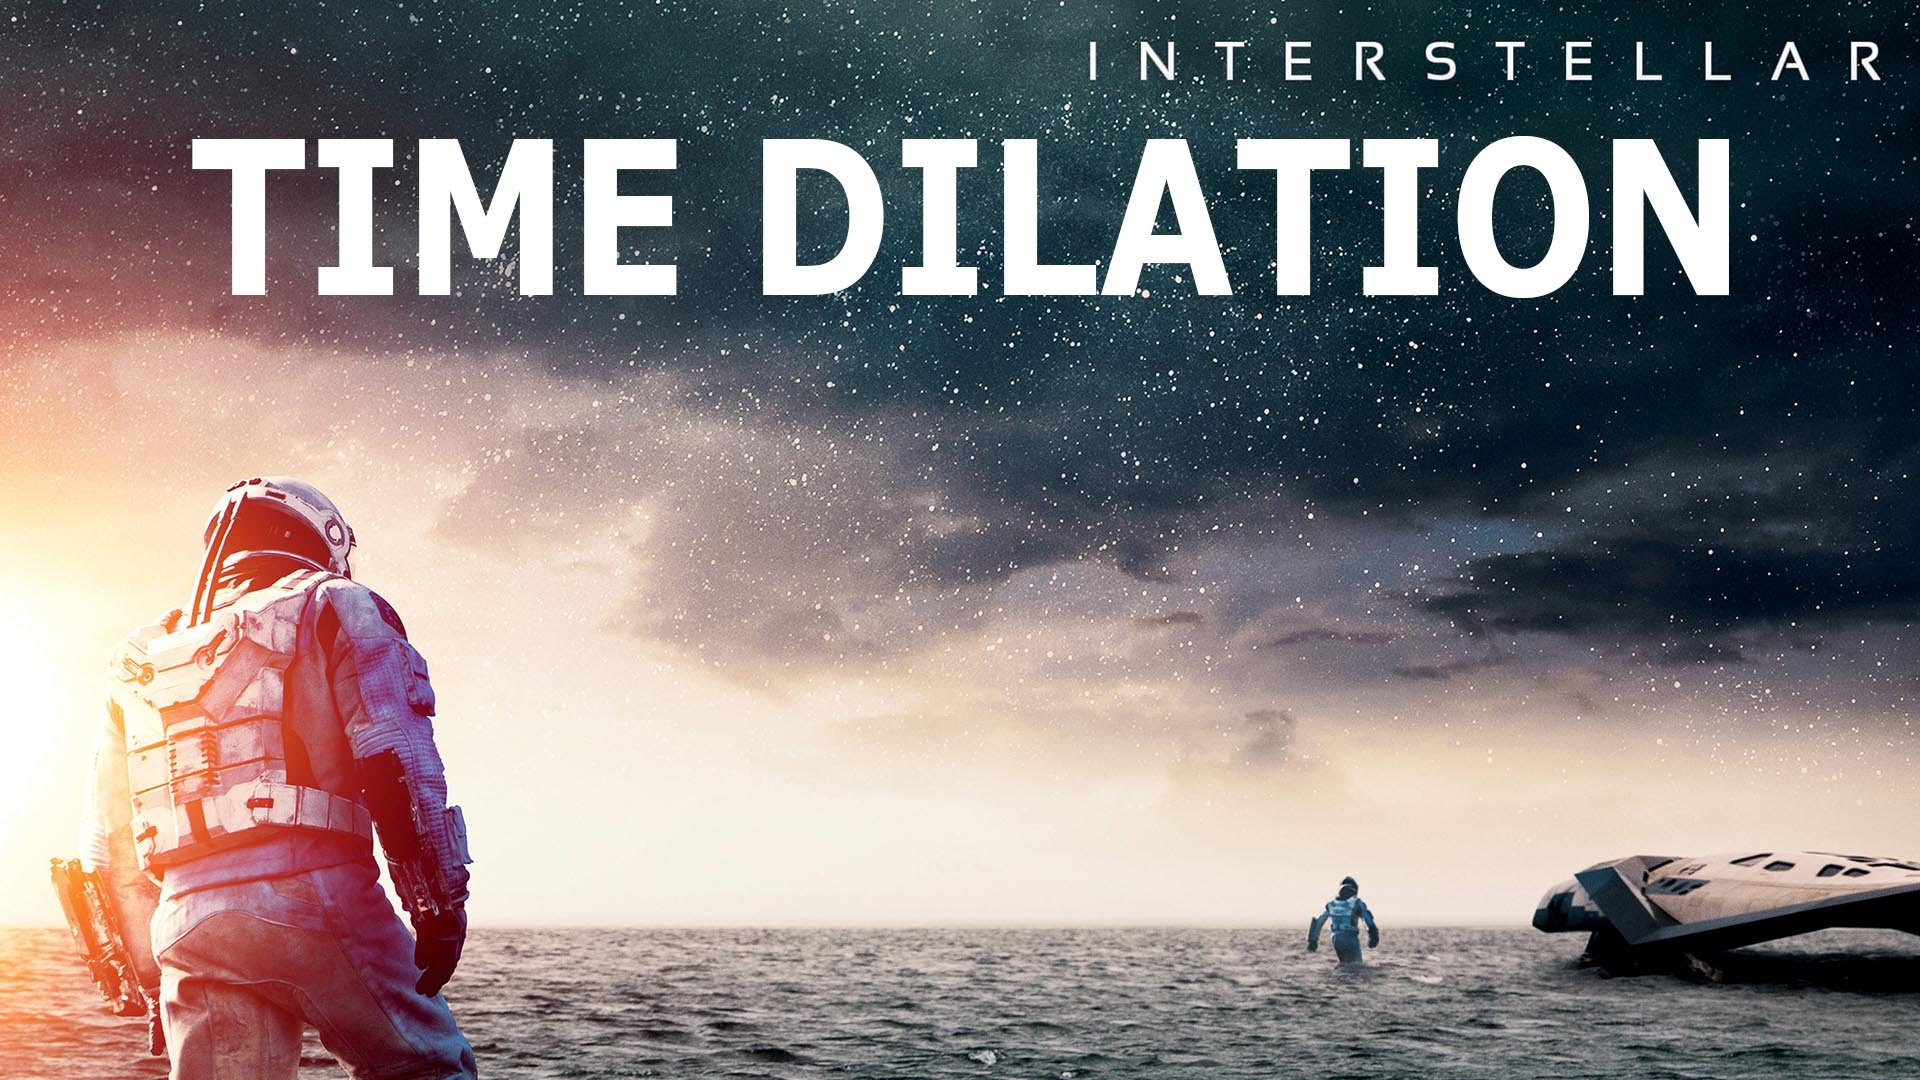 an analysis of the movie interstellar and the scientific accuracies in it Christopher nolan's movie 'interstellar' will be an epic space adventure encapsulating humanity's need to explore the universe, but it's the visual effects for the movie that are garnering early.